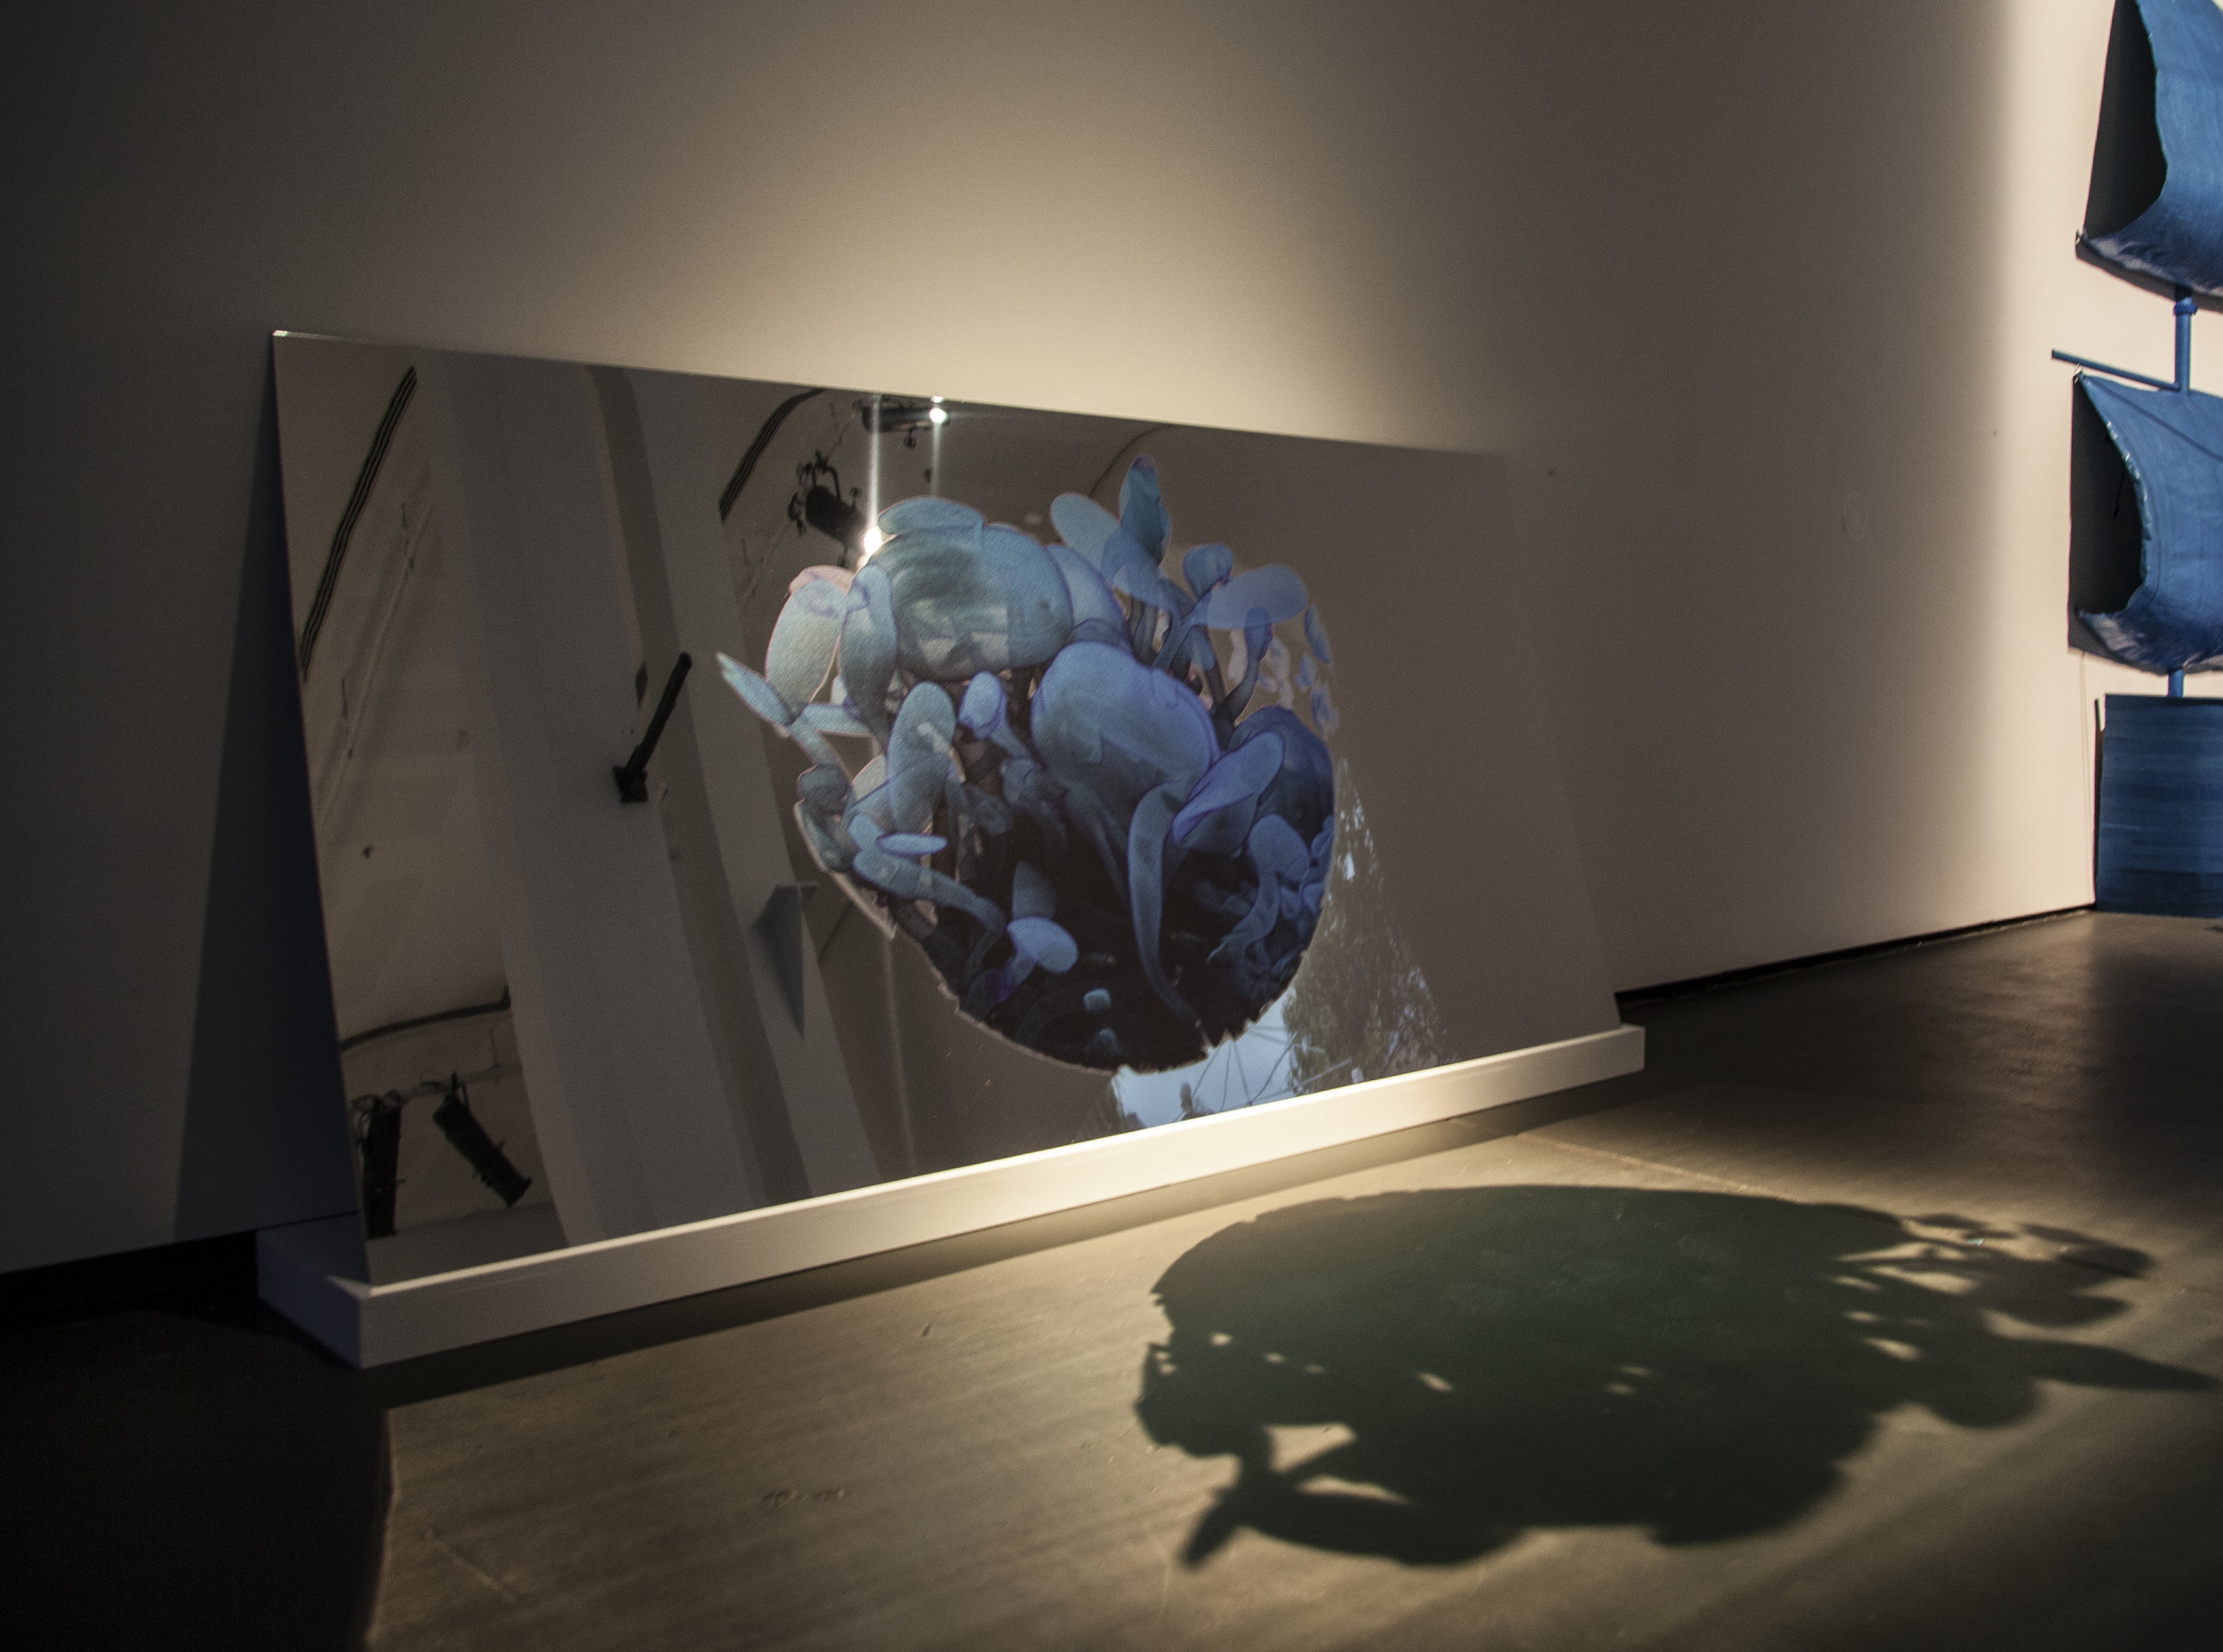 Erica Seccombe, Virtual Life , 2014, (installed in the exhibition) Solvent print on aluminium composite board, 1220 mm x 2400 mm. Winner inaugural Paramor Prize for Art + Innovation, 2015 Casula Powerhouse Art Centre Liverpool NSW.